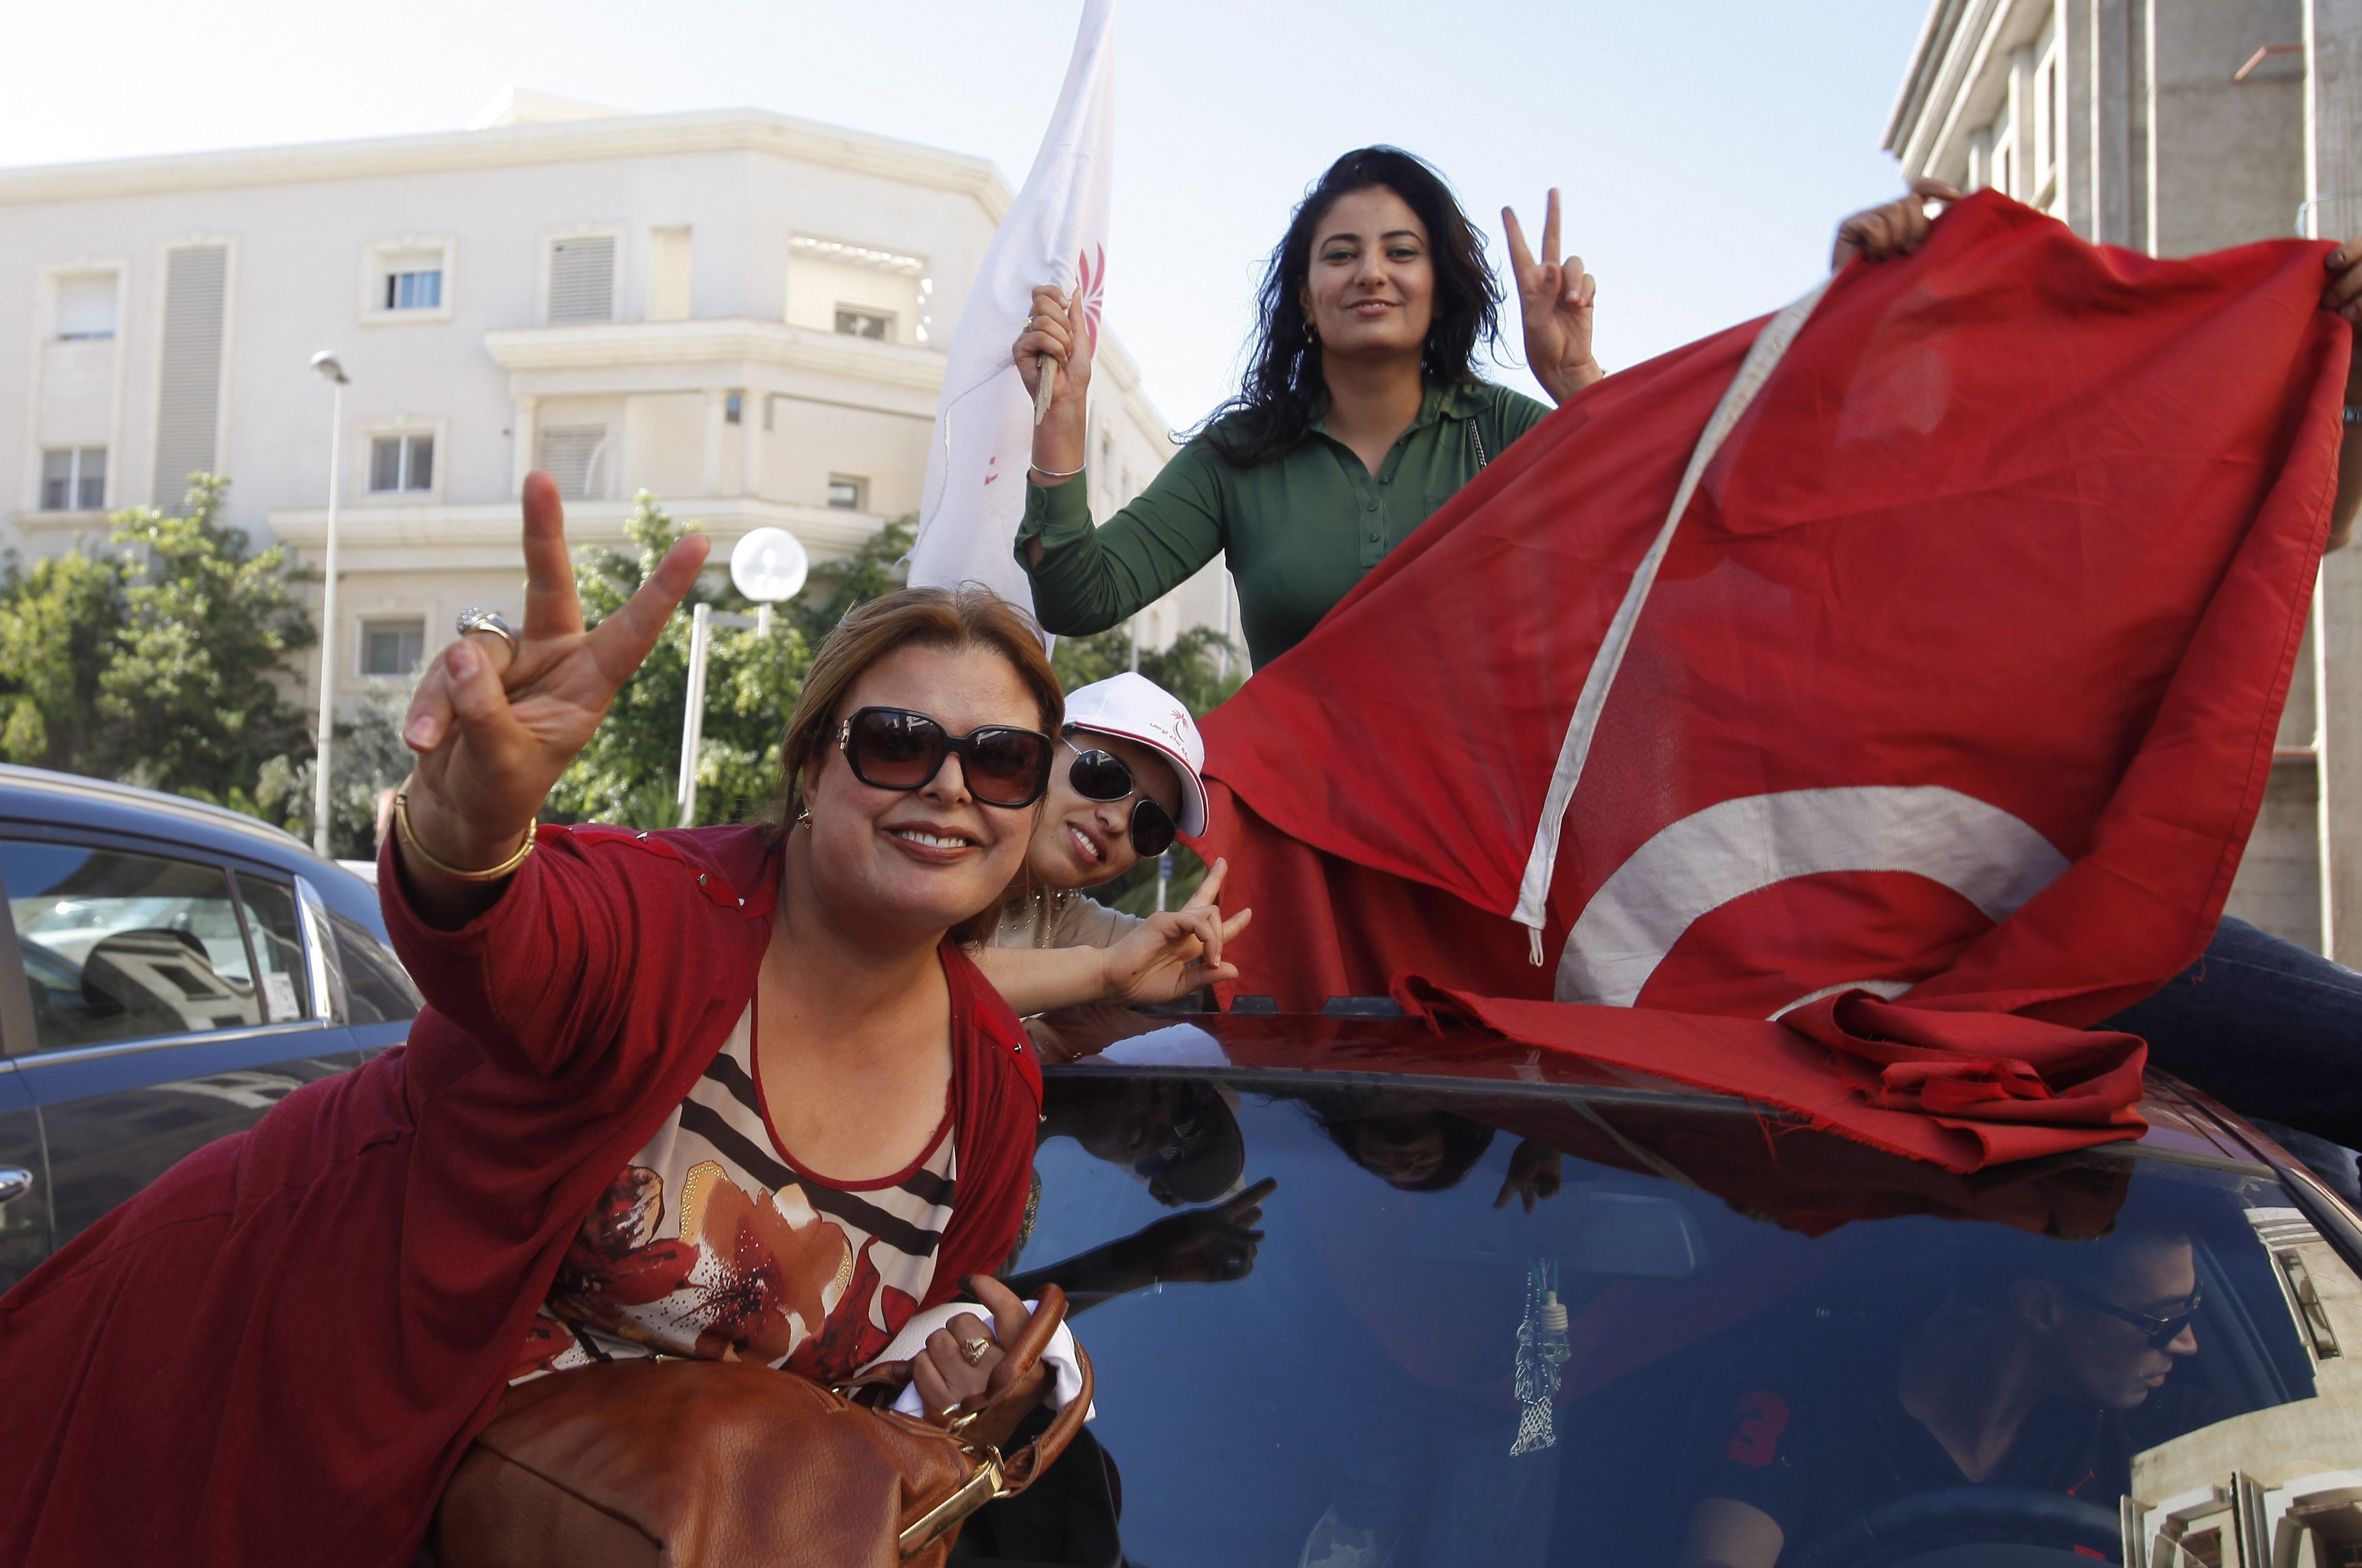 Supporters of the Nida Tounes (Call of Tunisia) secular party movement wave flags and shout slogans outside Nidaa Tounes headquarters in Tunis Oct. 28, 2014.